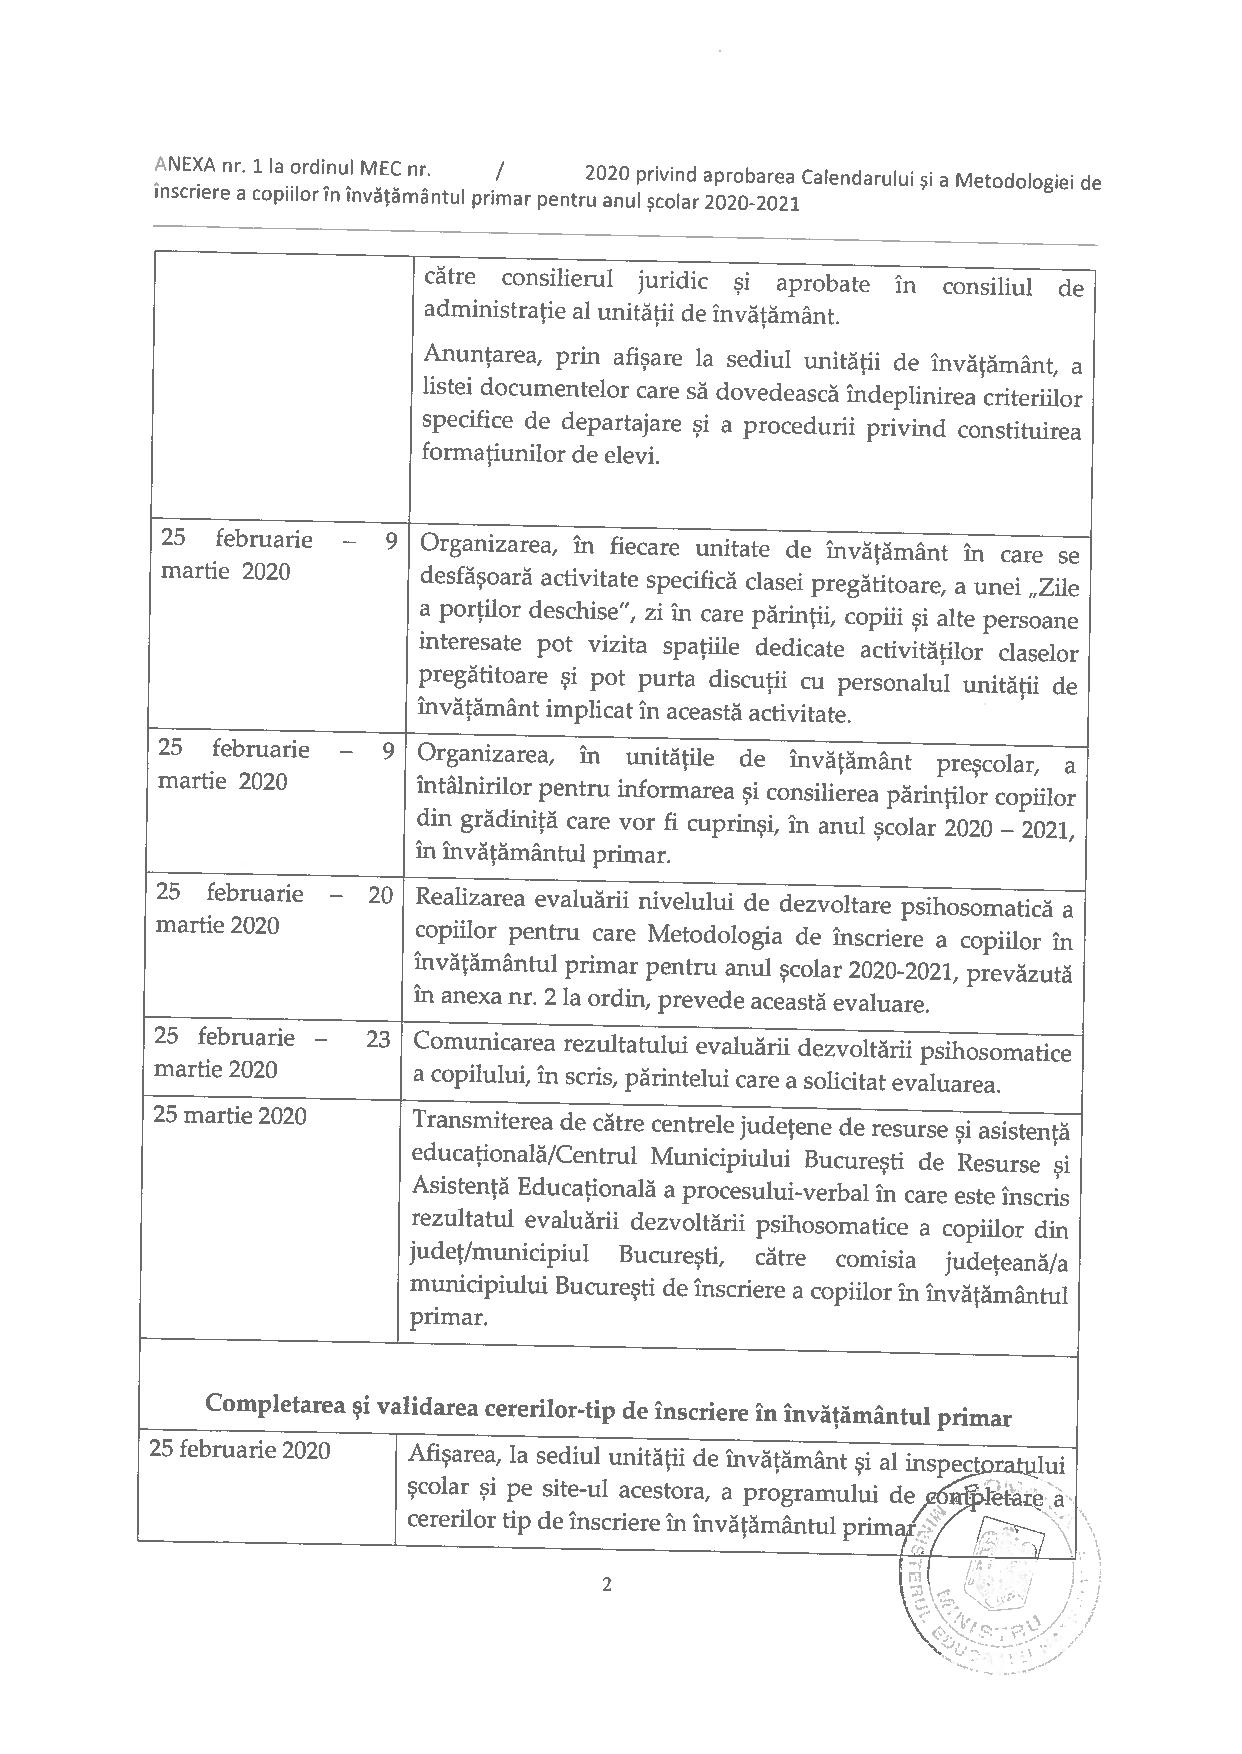 Calendar_inscriere_inv. primar_2020-pages-28-31 (1)-page-002.jpg